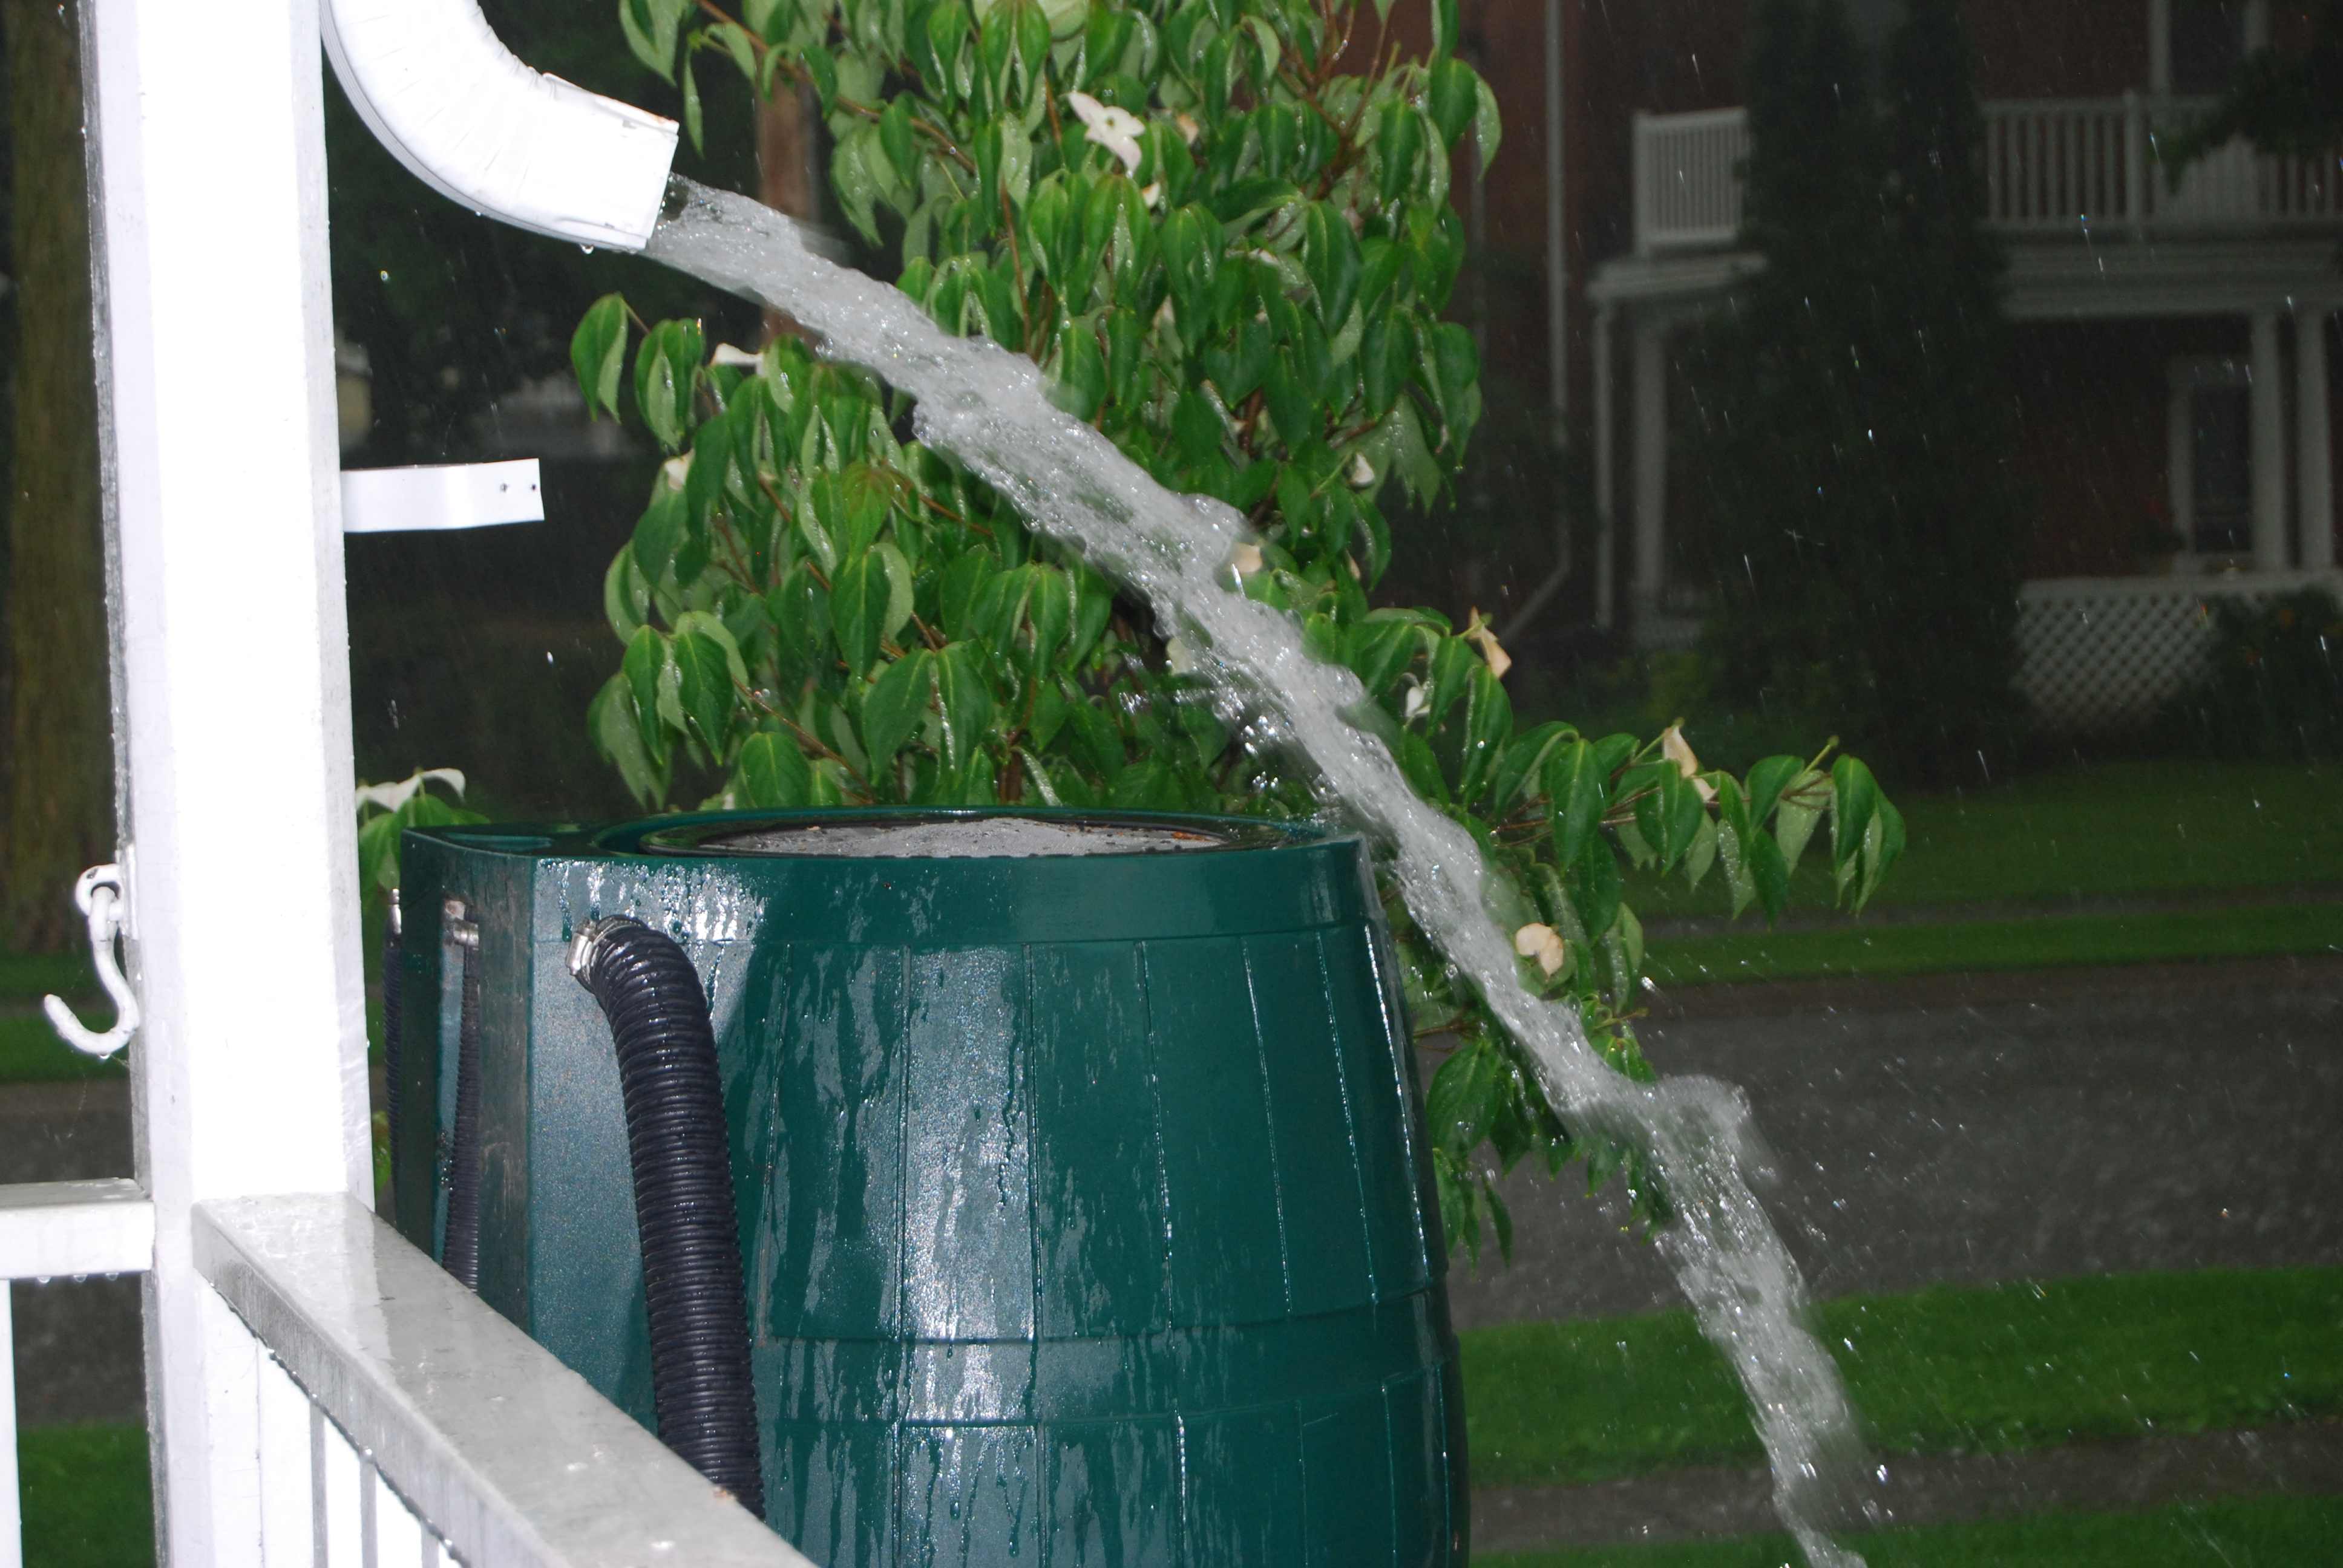 Rain Barrels – Who's Crazy Now?